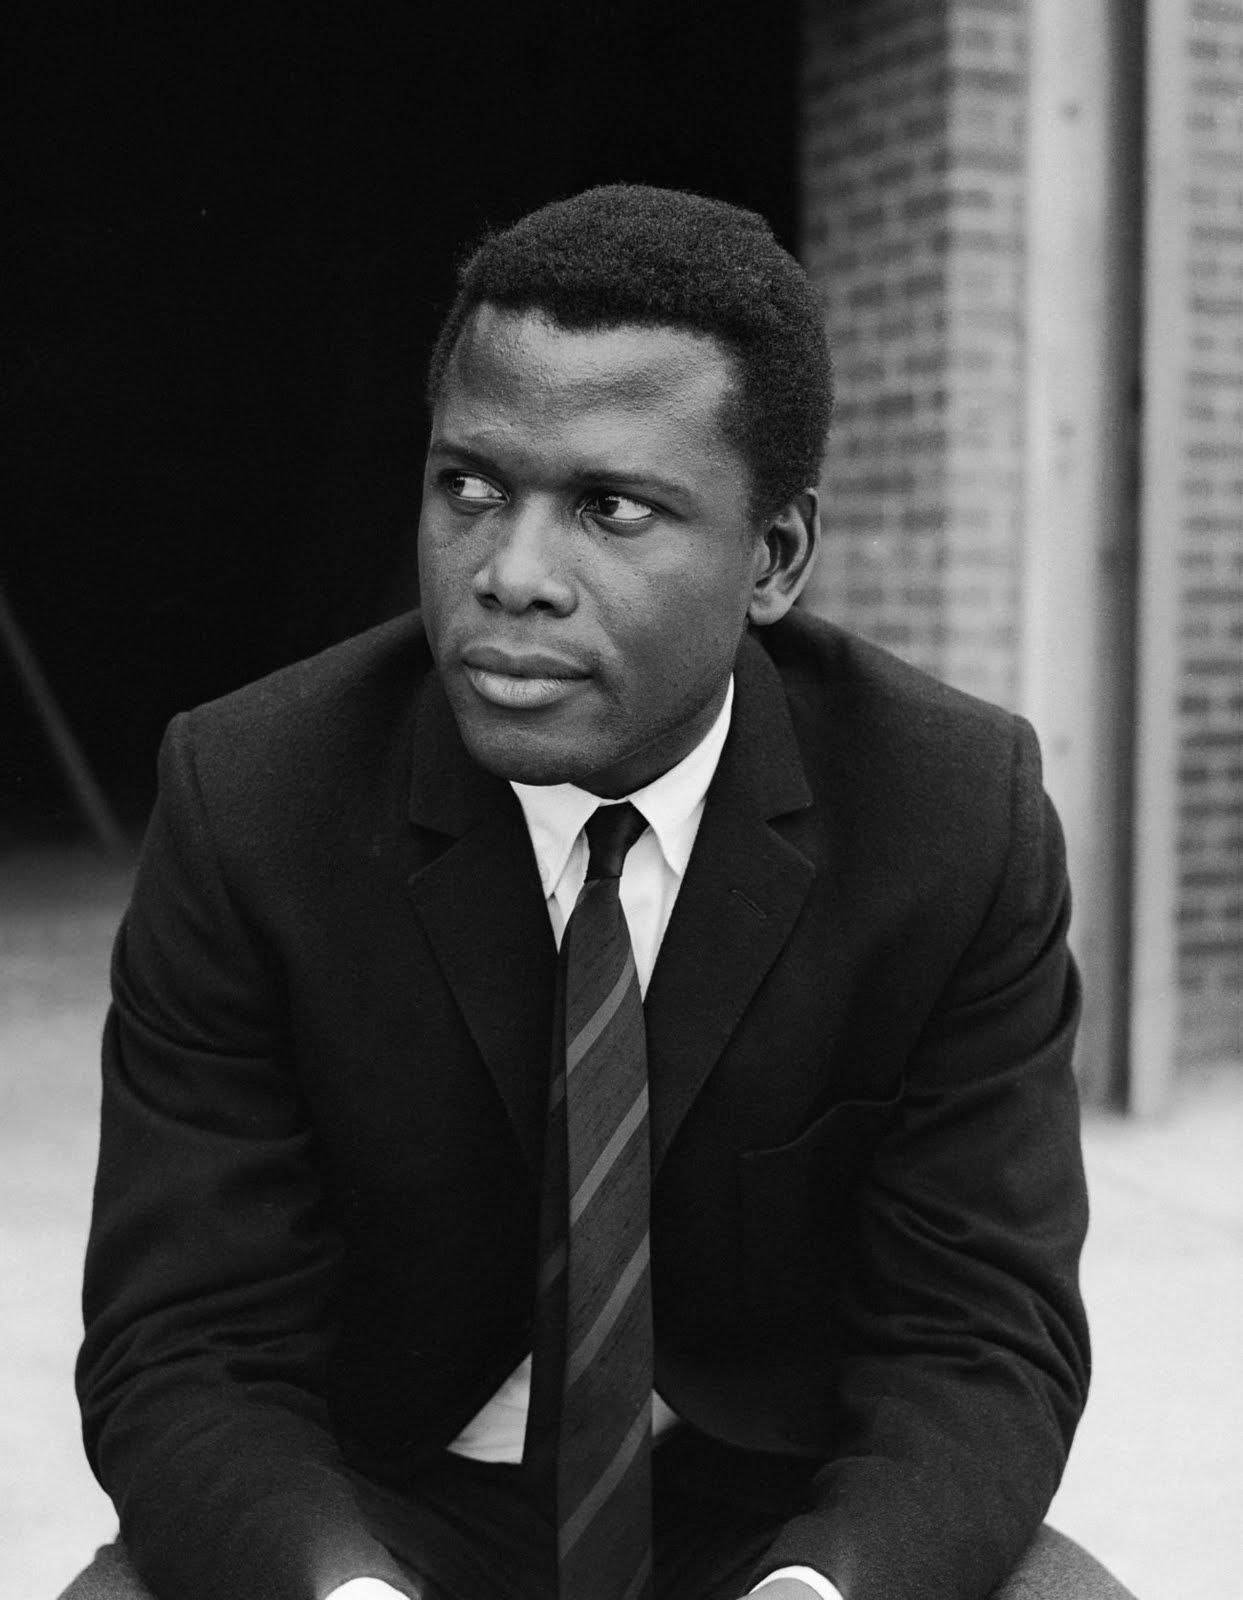 """Sidney Poitier. """"I never had an occasion to question color, therefore, I only saw myself as what I was... a human being."""""""